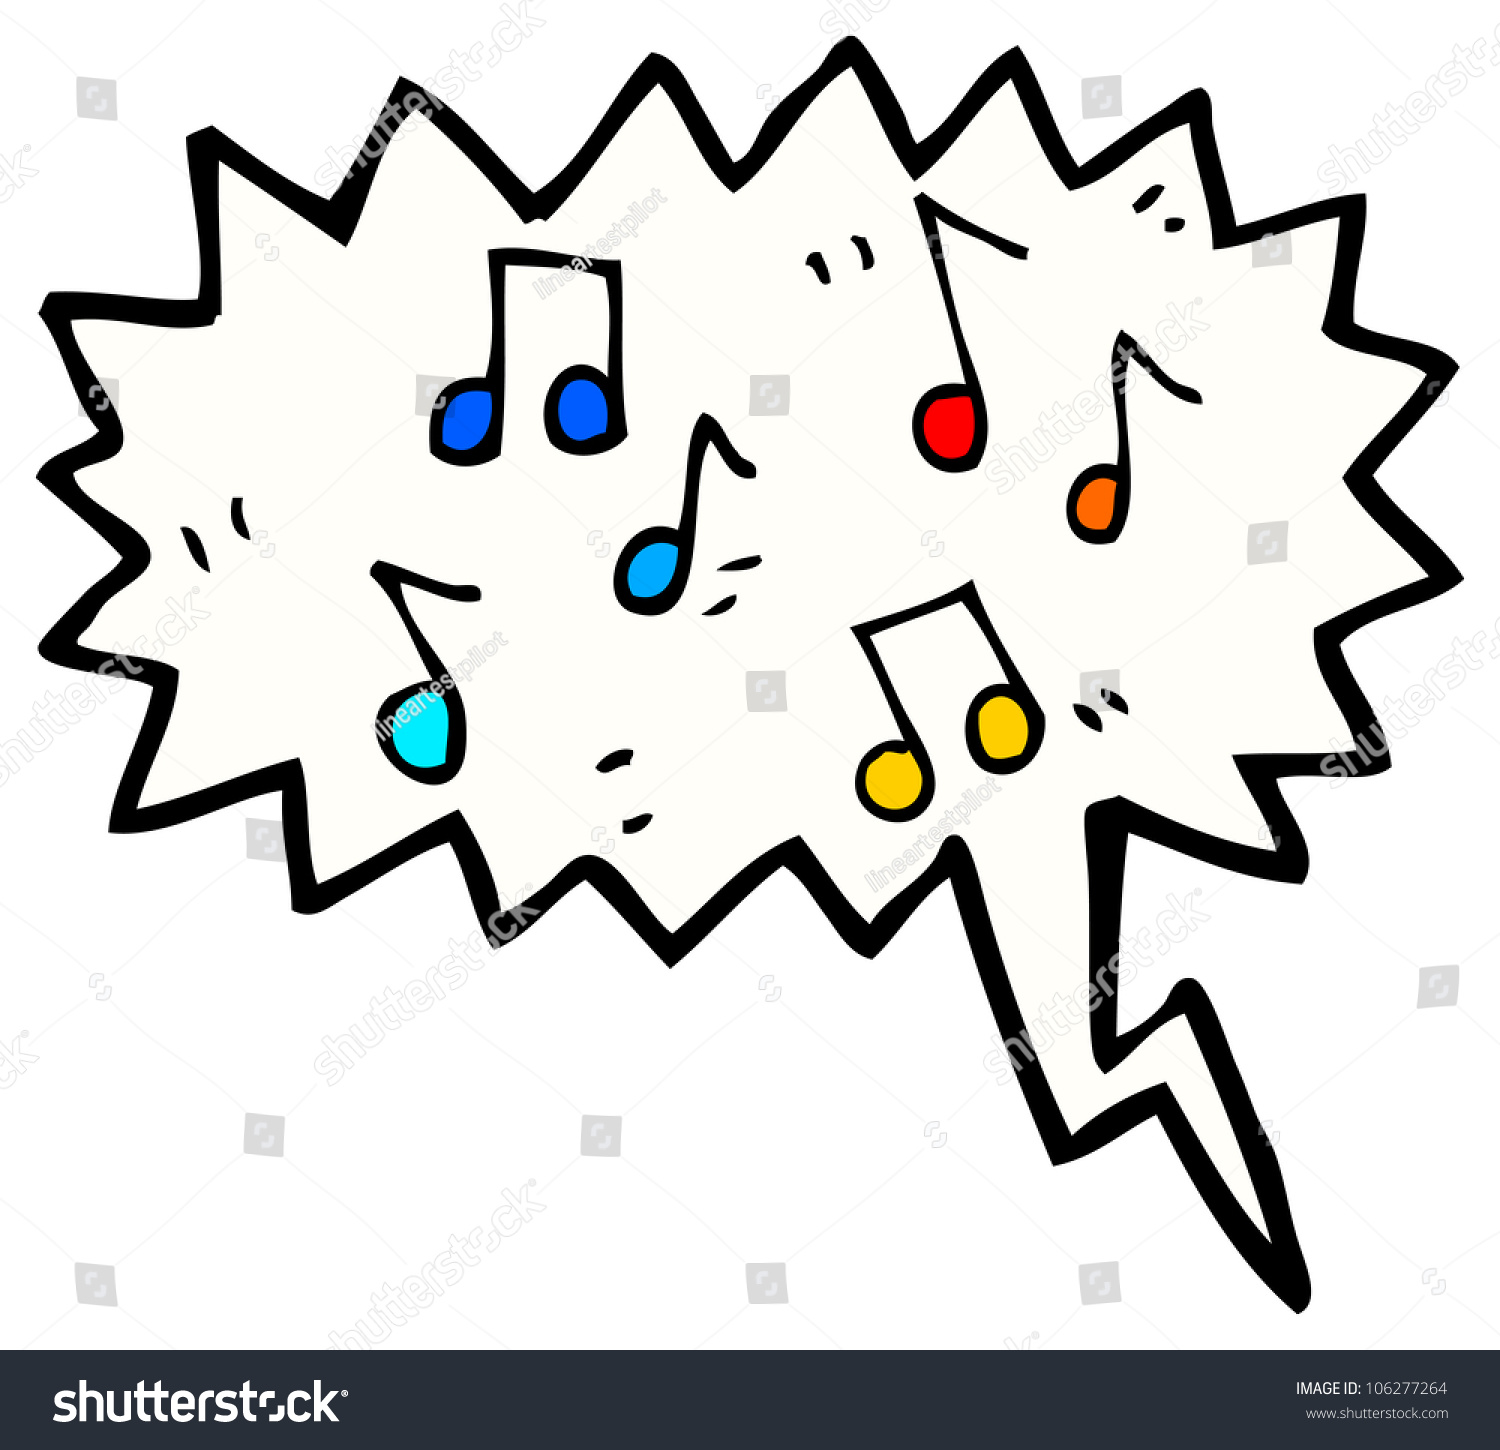 Cartoon Music Sound Stock Illustration 106277264 - Shutterstock